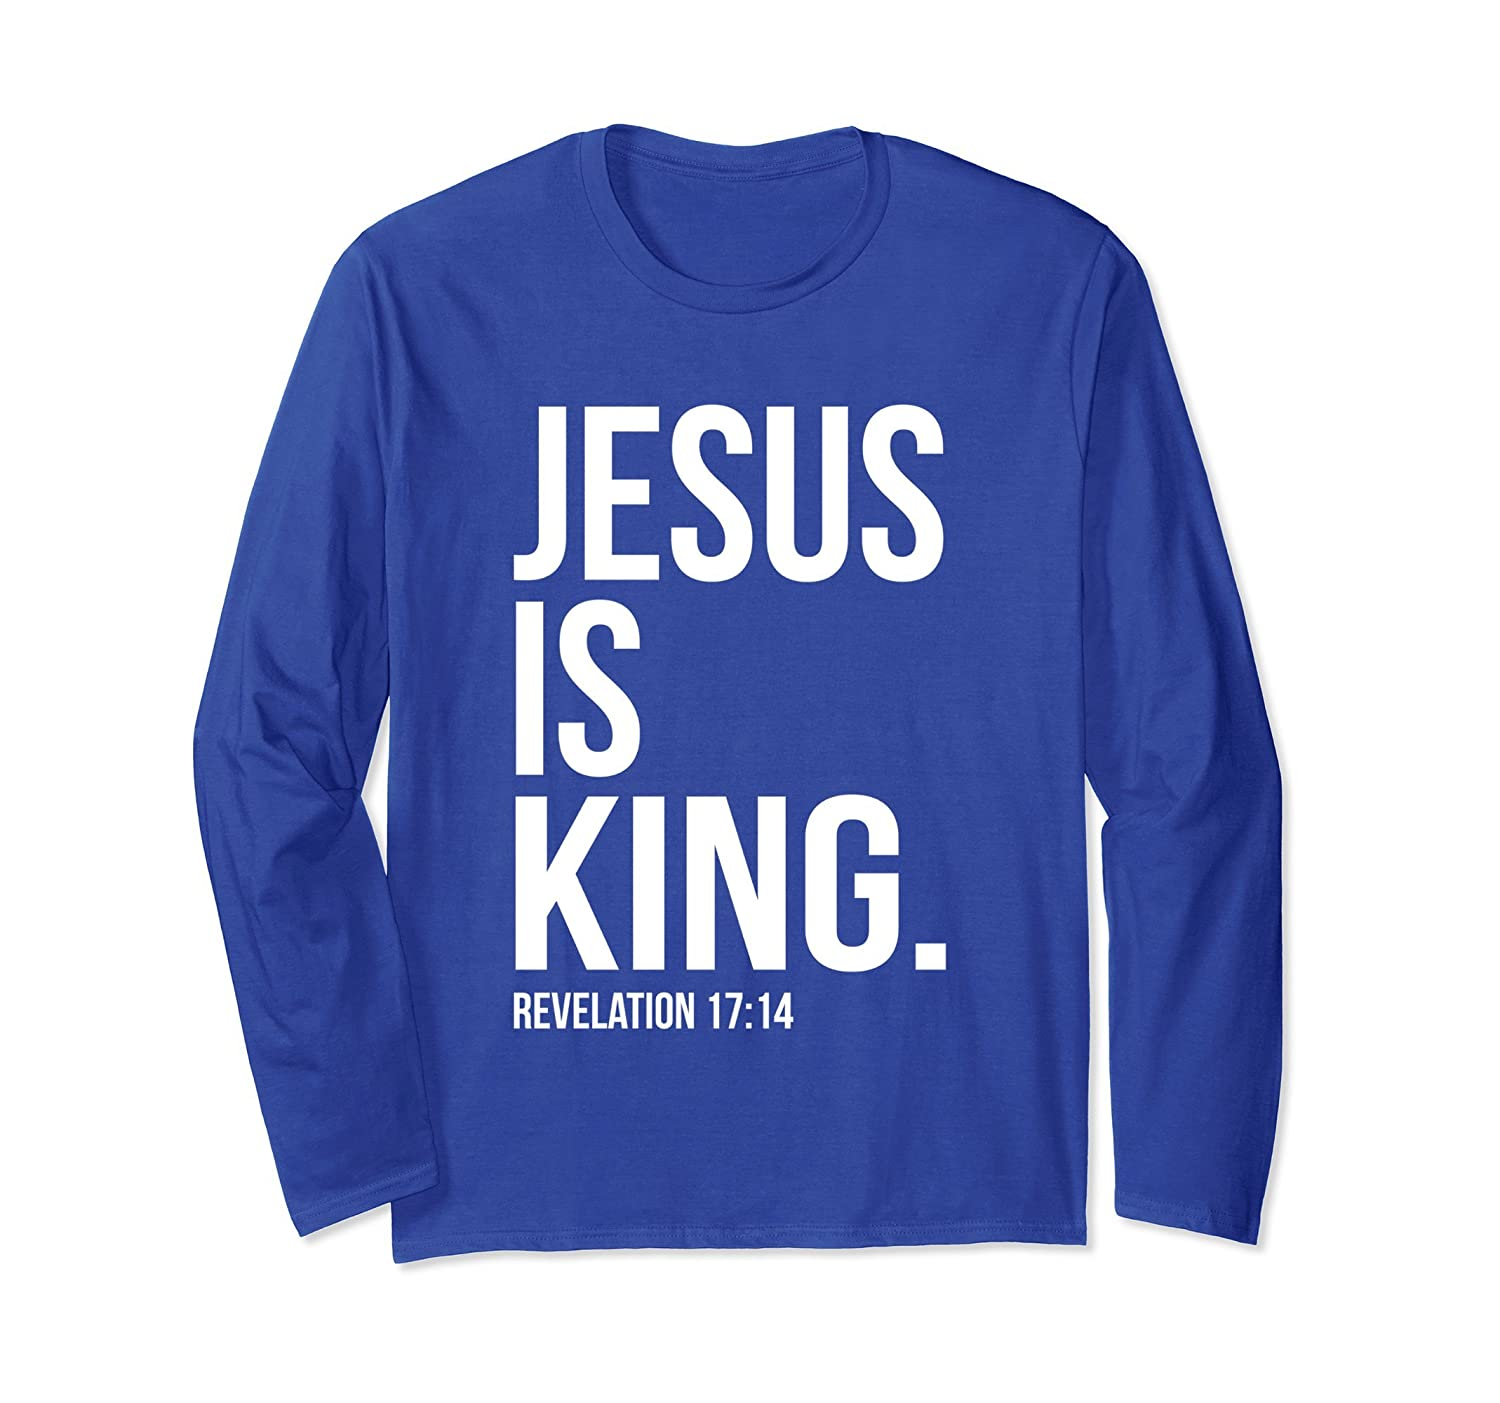 Jesus Is King Christian Gospel Bible Sayings T-Shirts-ah my shirt one gift